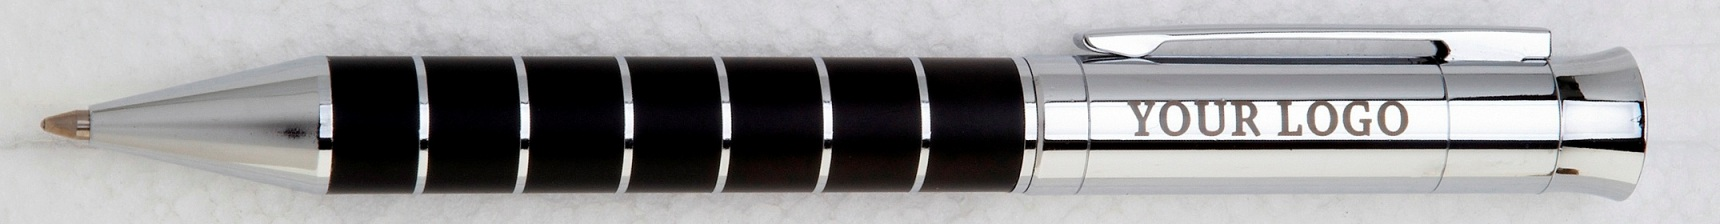 charisma-pen-good-quality-twist-action-stainless-steel